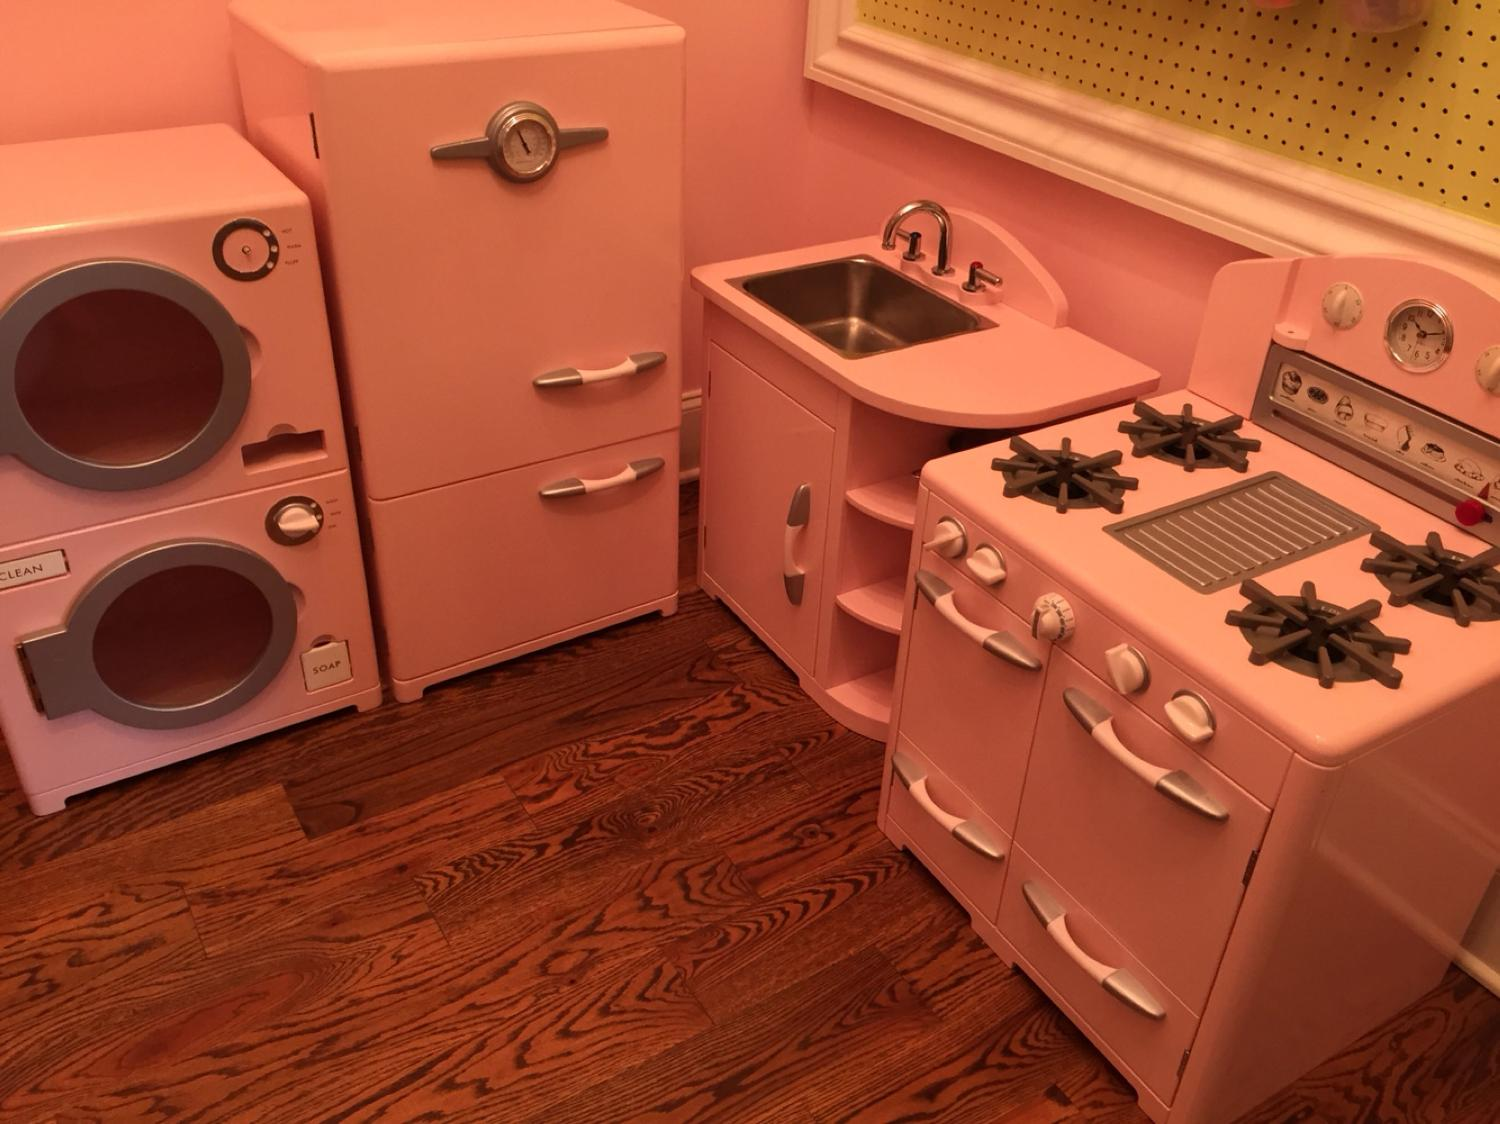 Pottery barn kids retro kitchen set plus washer / dryer